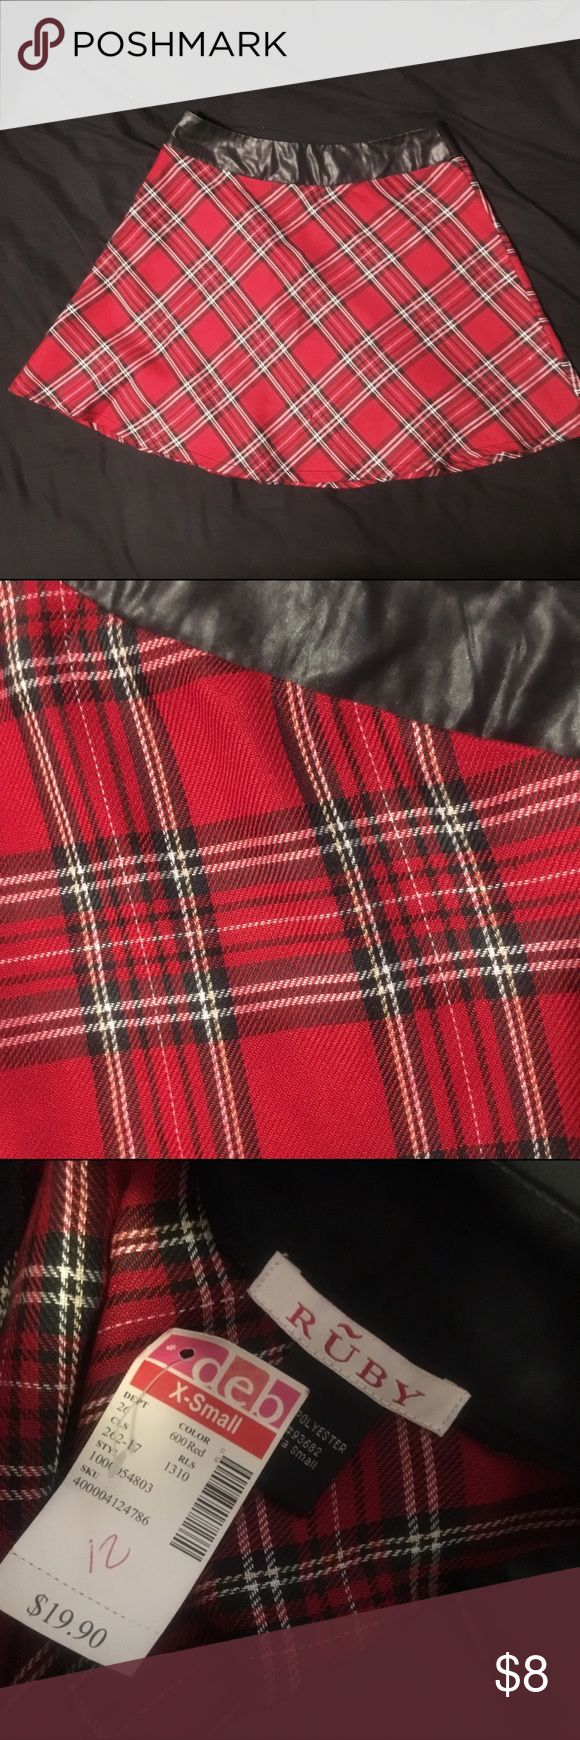 Red Plaid Skater Skirt w/ Black Pleather Band This flirty schoolgirl style skirt has a faux leather waist band for a rebellious flair. Ruby Skirts Mini